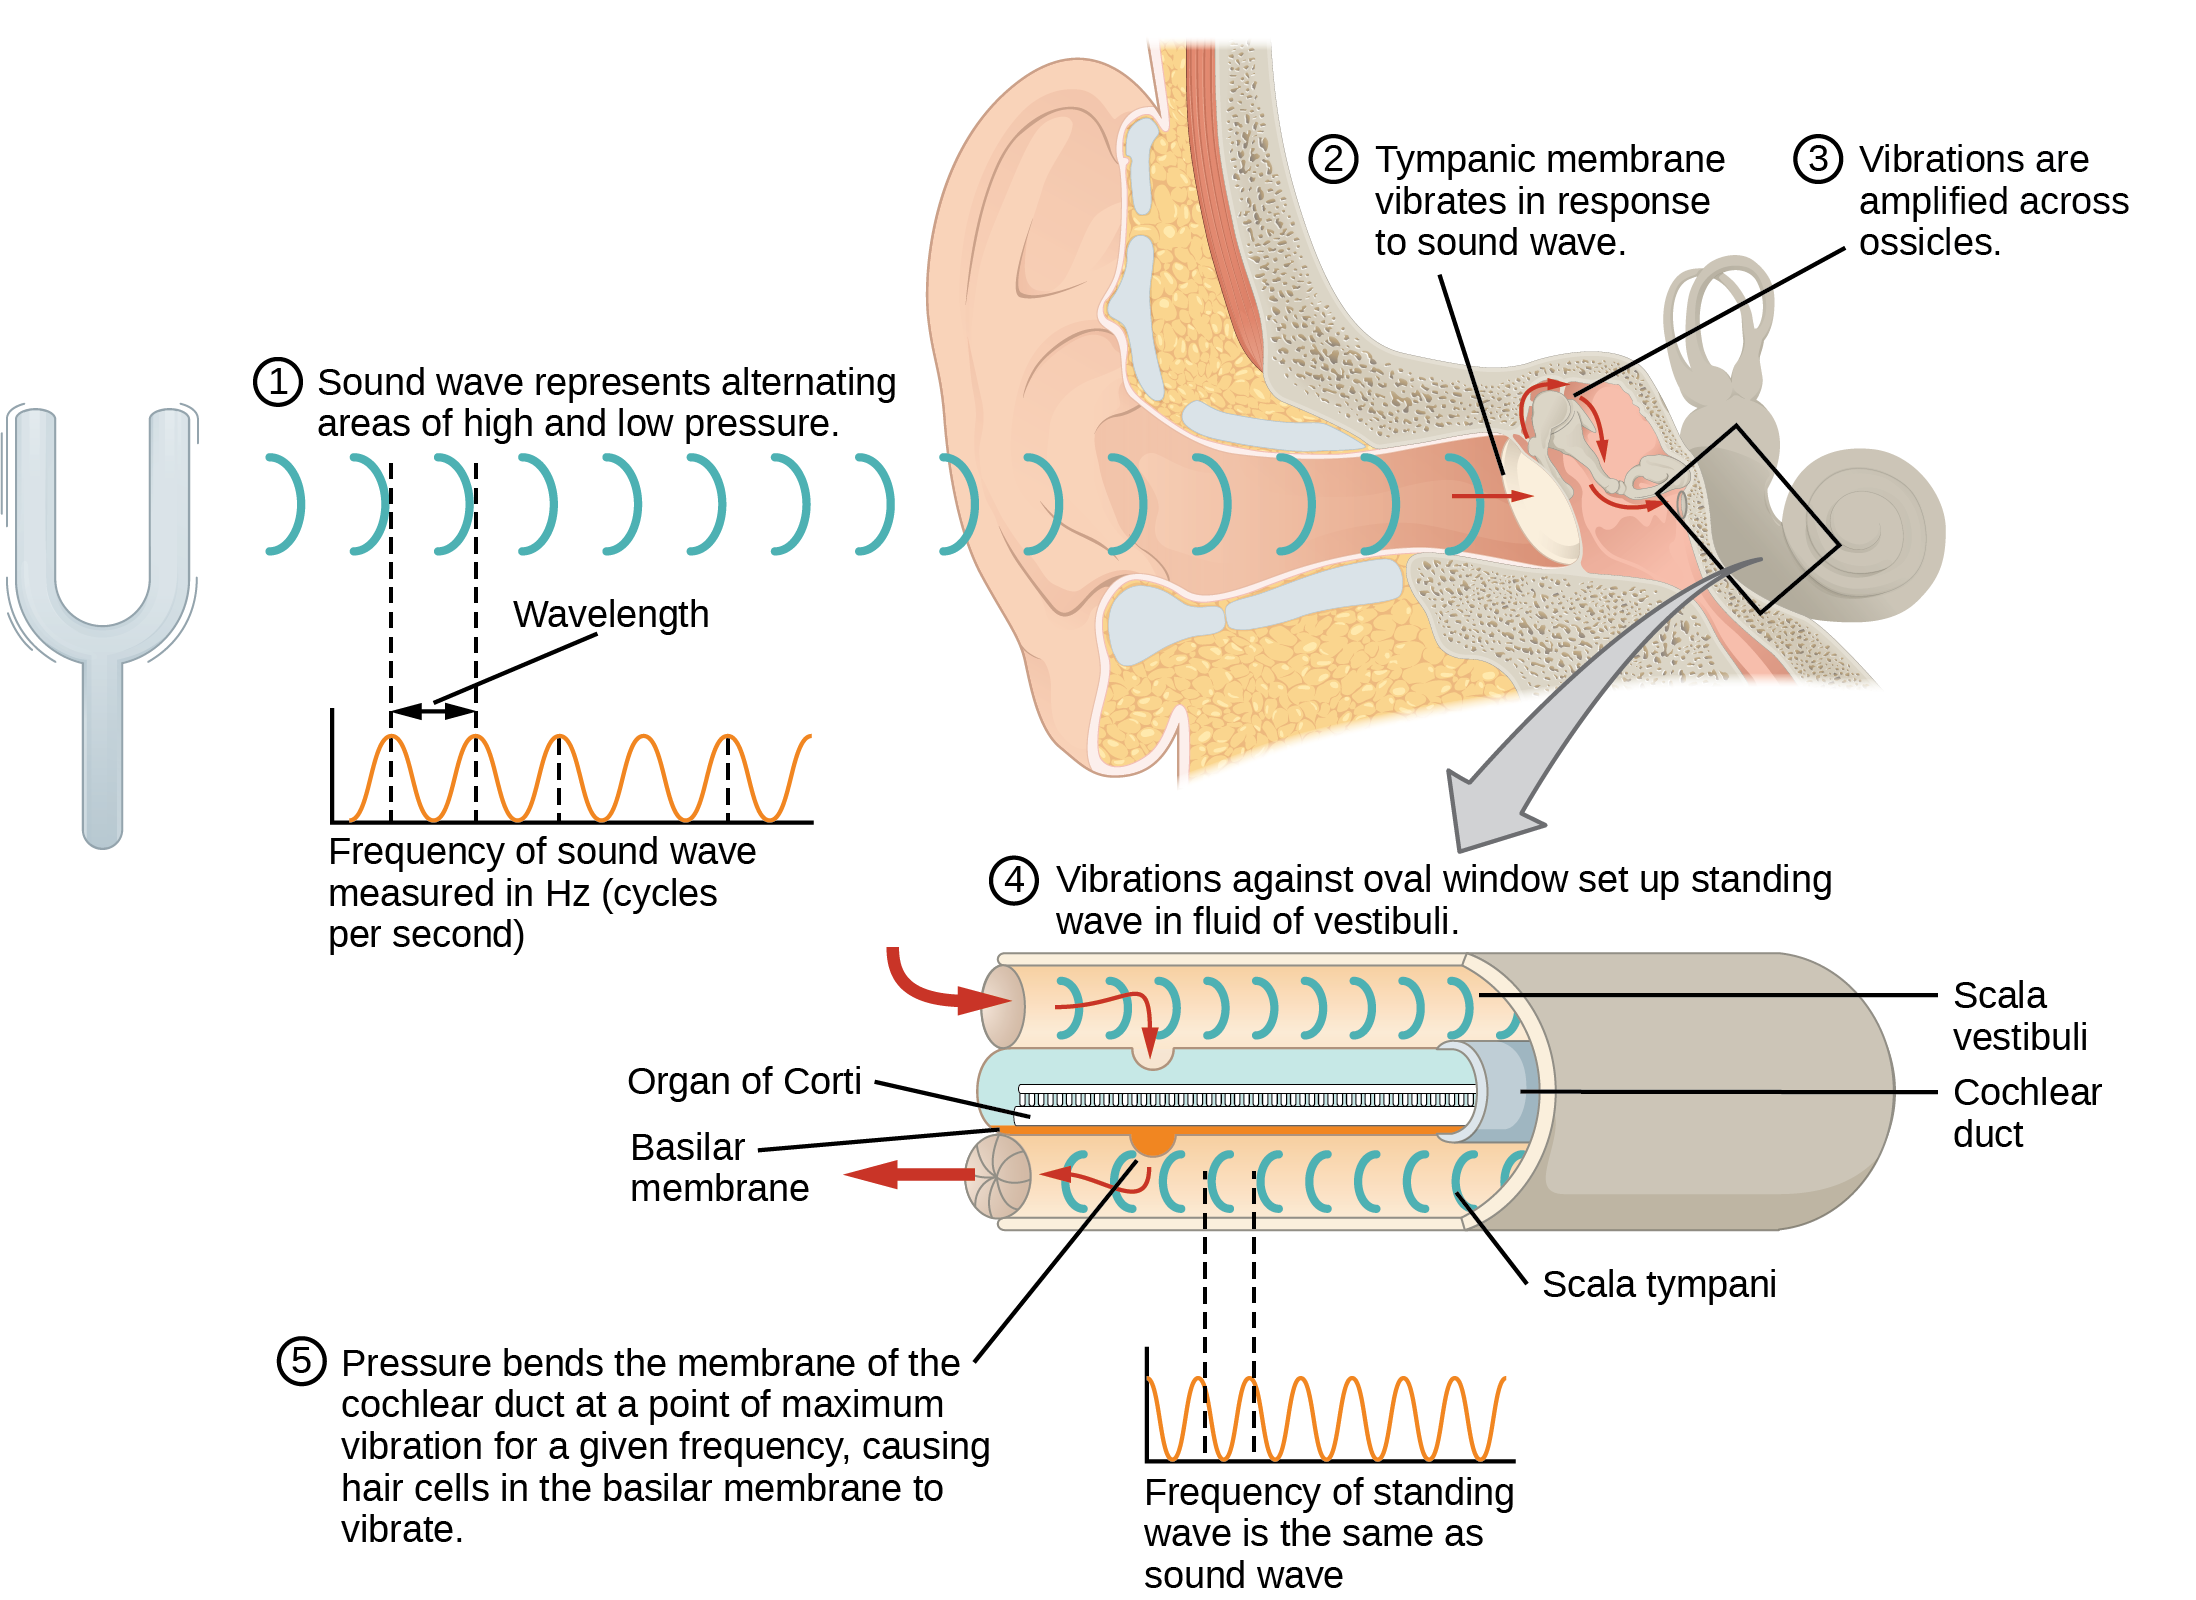 This diagram shows how sound waves travel through the ear, and each step details the process. A sound wave causes the tympanic membrane to vibrate. This vibration is amplified as it moves across the malleus, incus, and stapes. The amplified vibration is picked up by the oval window causing pressure waves in the fluid of the scala vestibuli and scala tympani. The complexity of the pressure waves is determined by the changes in amplitude and frequency of the sound waves entering the ear.